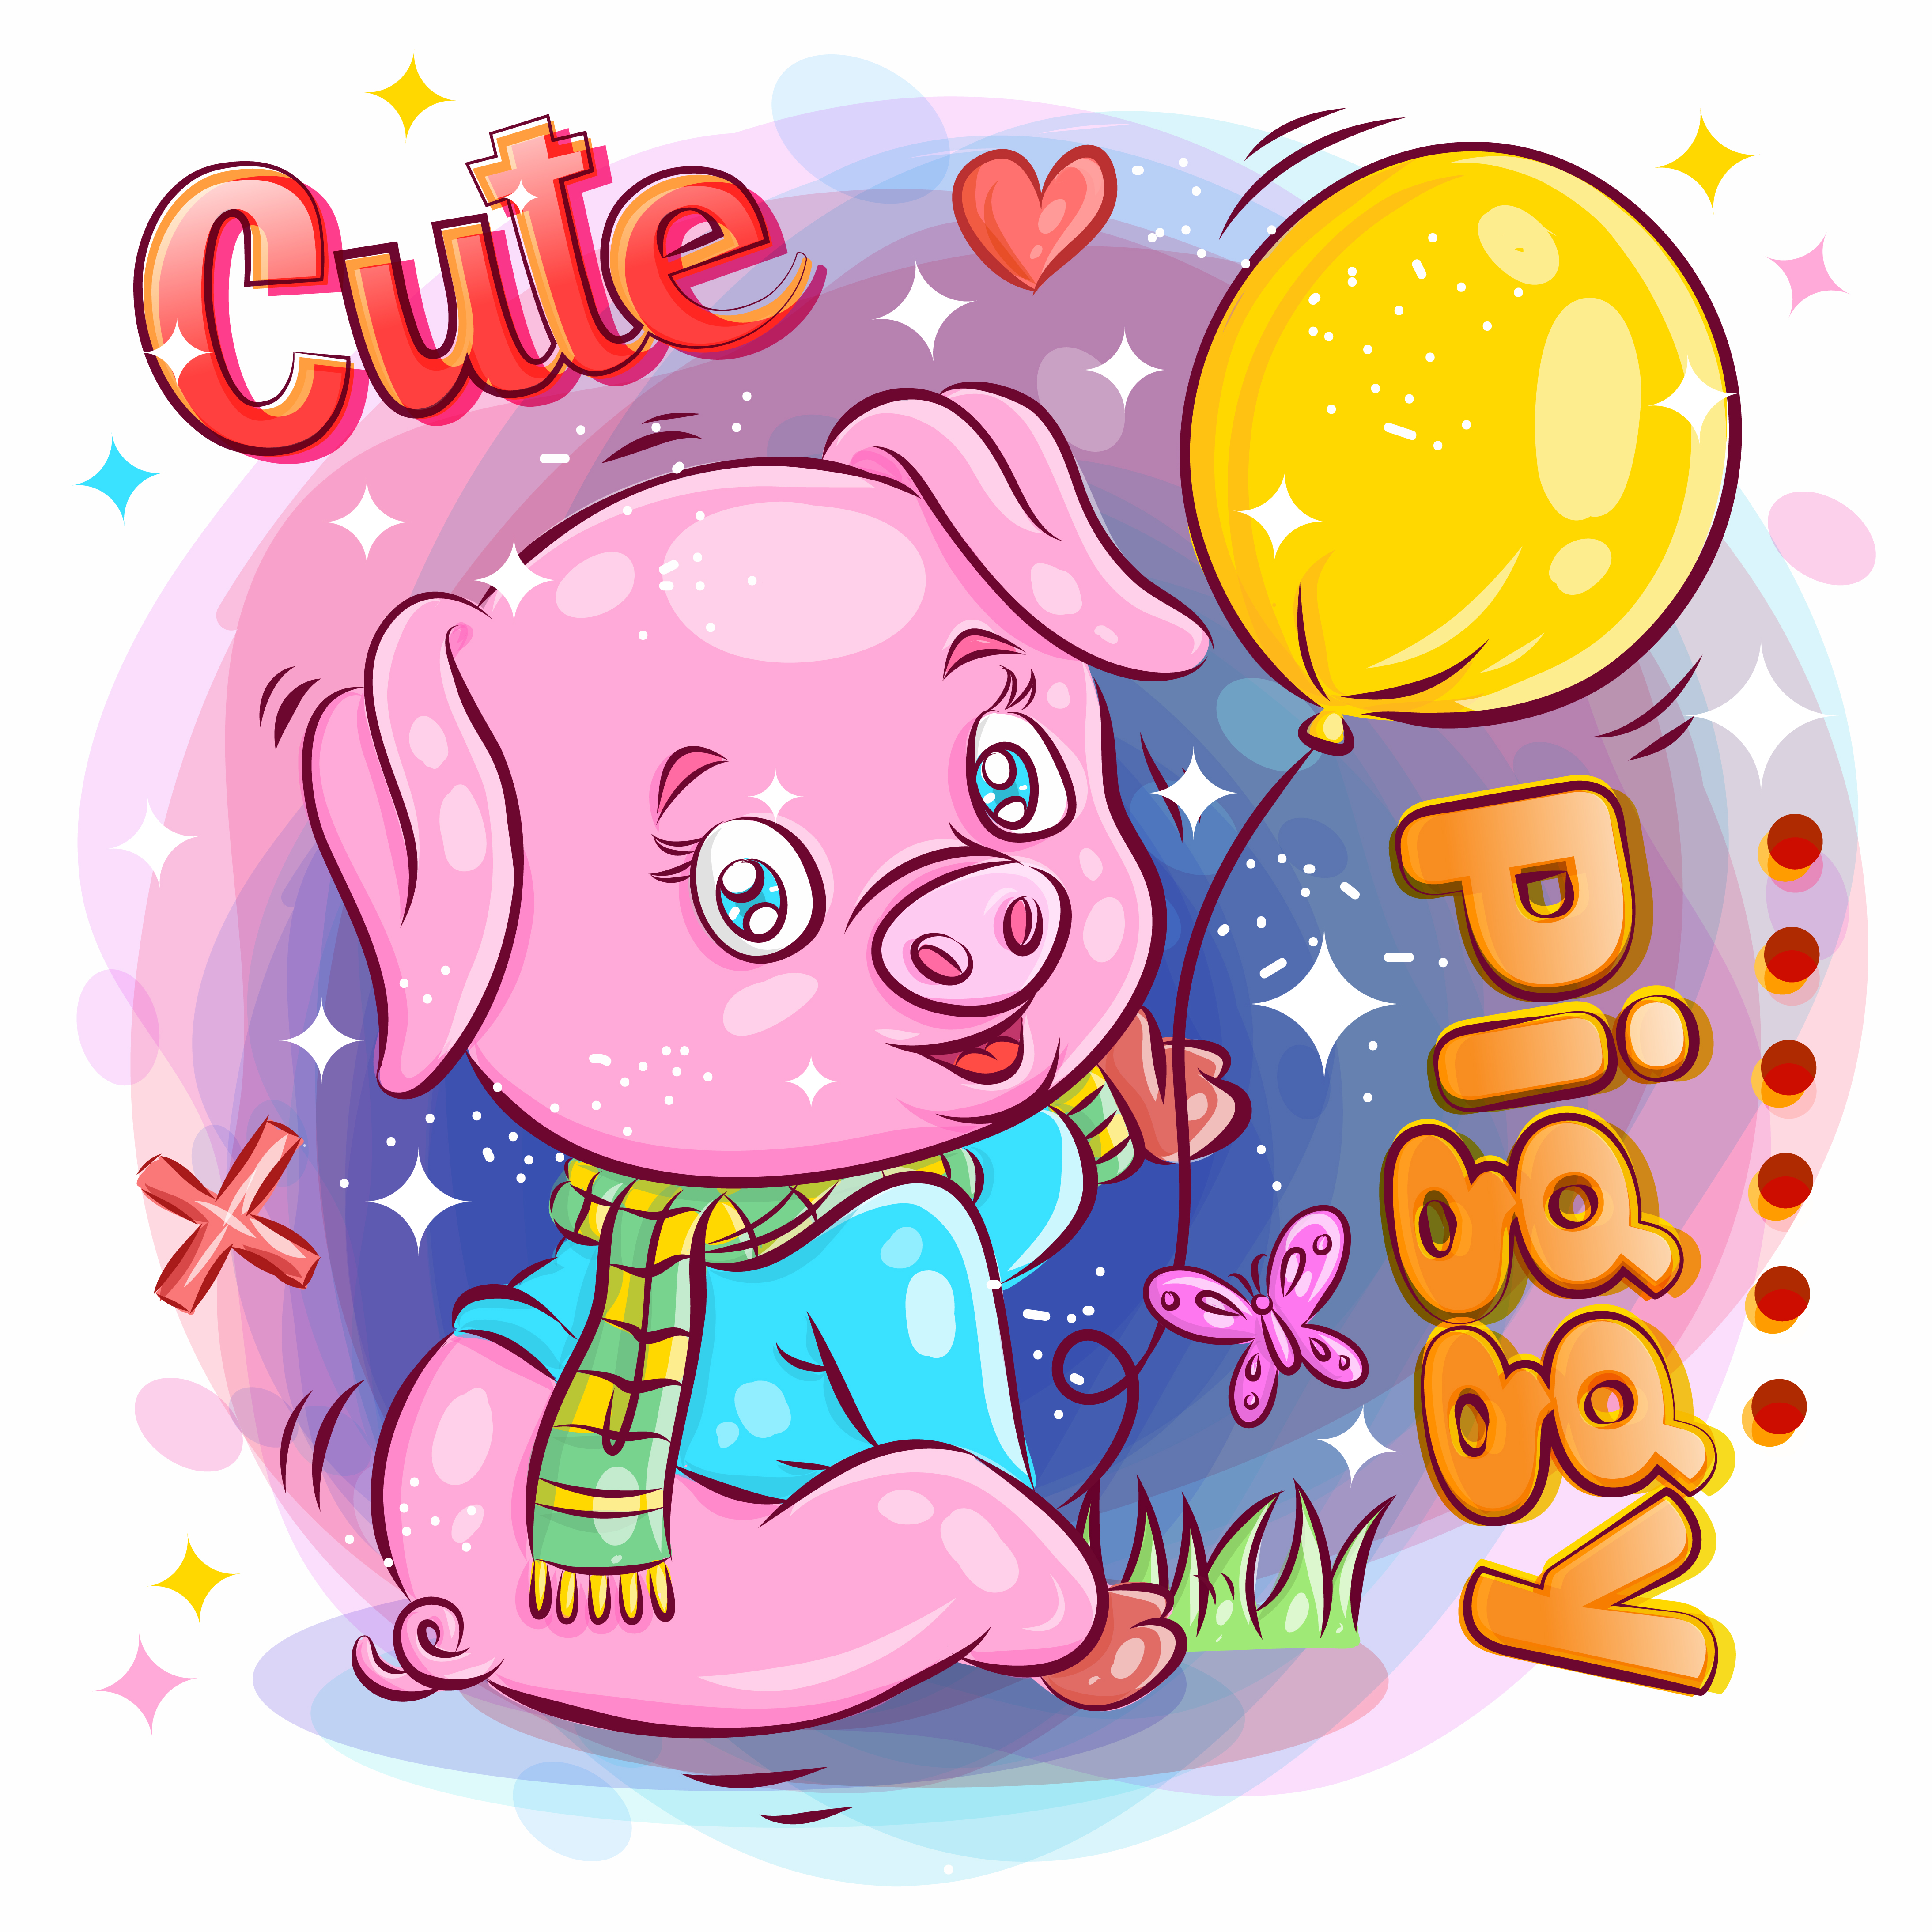 Cute Pig Holding and Playing with Balloon